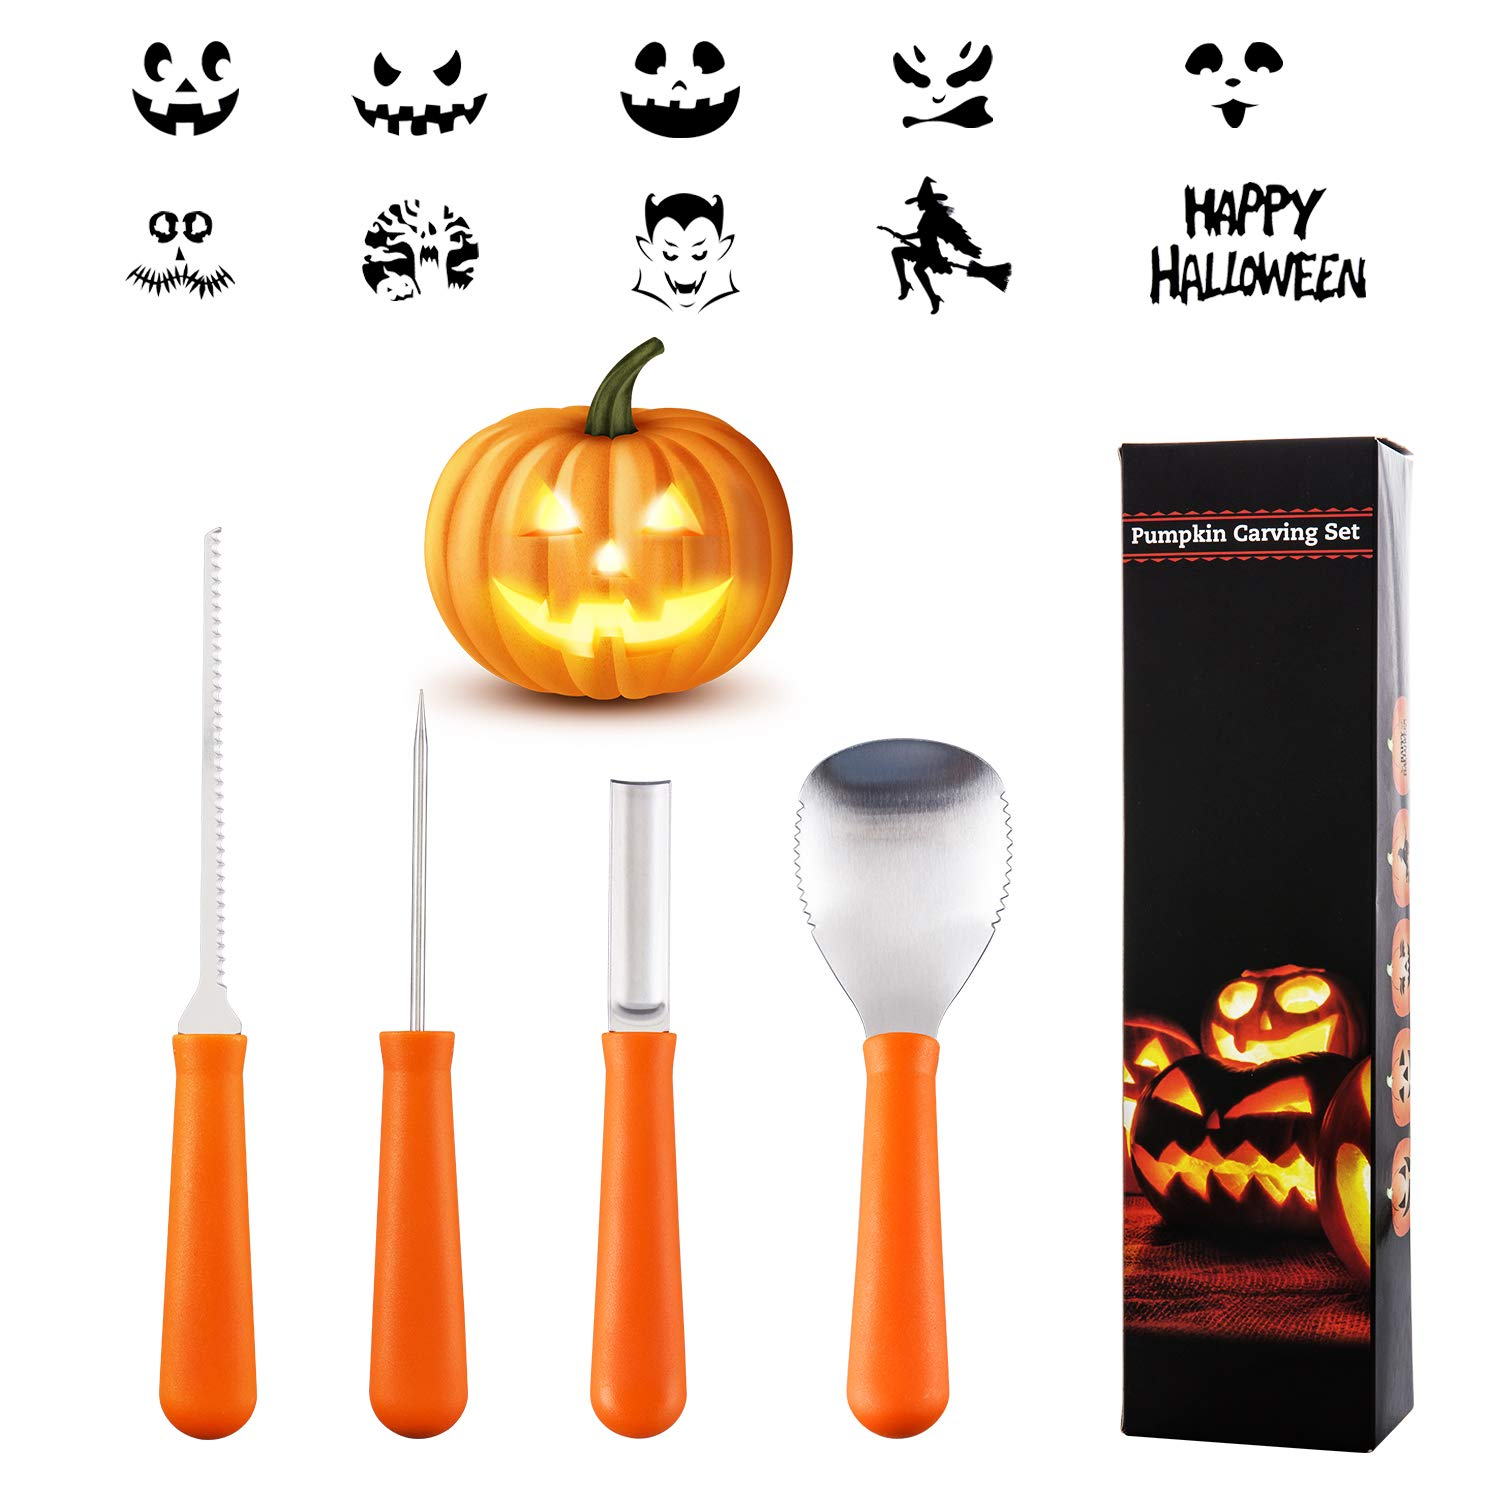 Pumpkin Carving Kit, 4 Pieces Heavy Duty Stainless Steel Pumpkin Carving Tools with 10 Carving Stencils, Ergonomic Design, Perfect for Adult and Children Halloween Decoration by Greatever